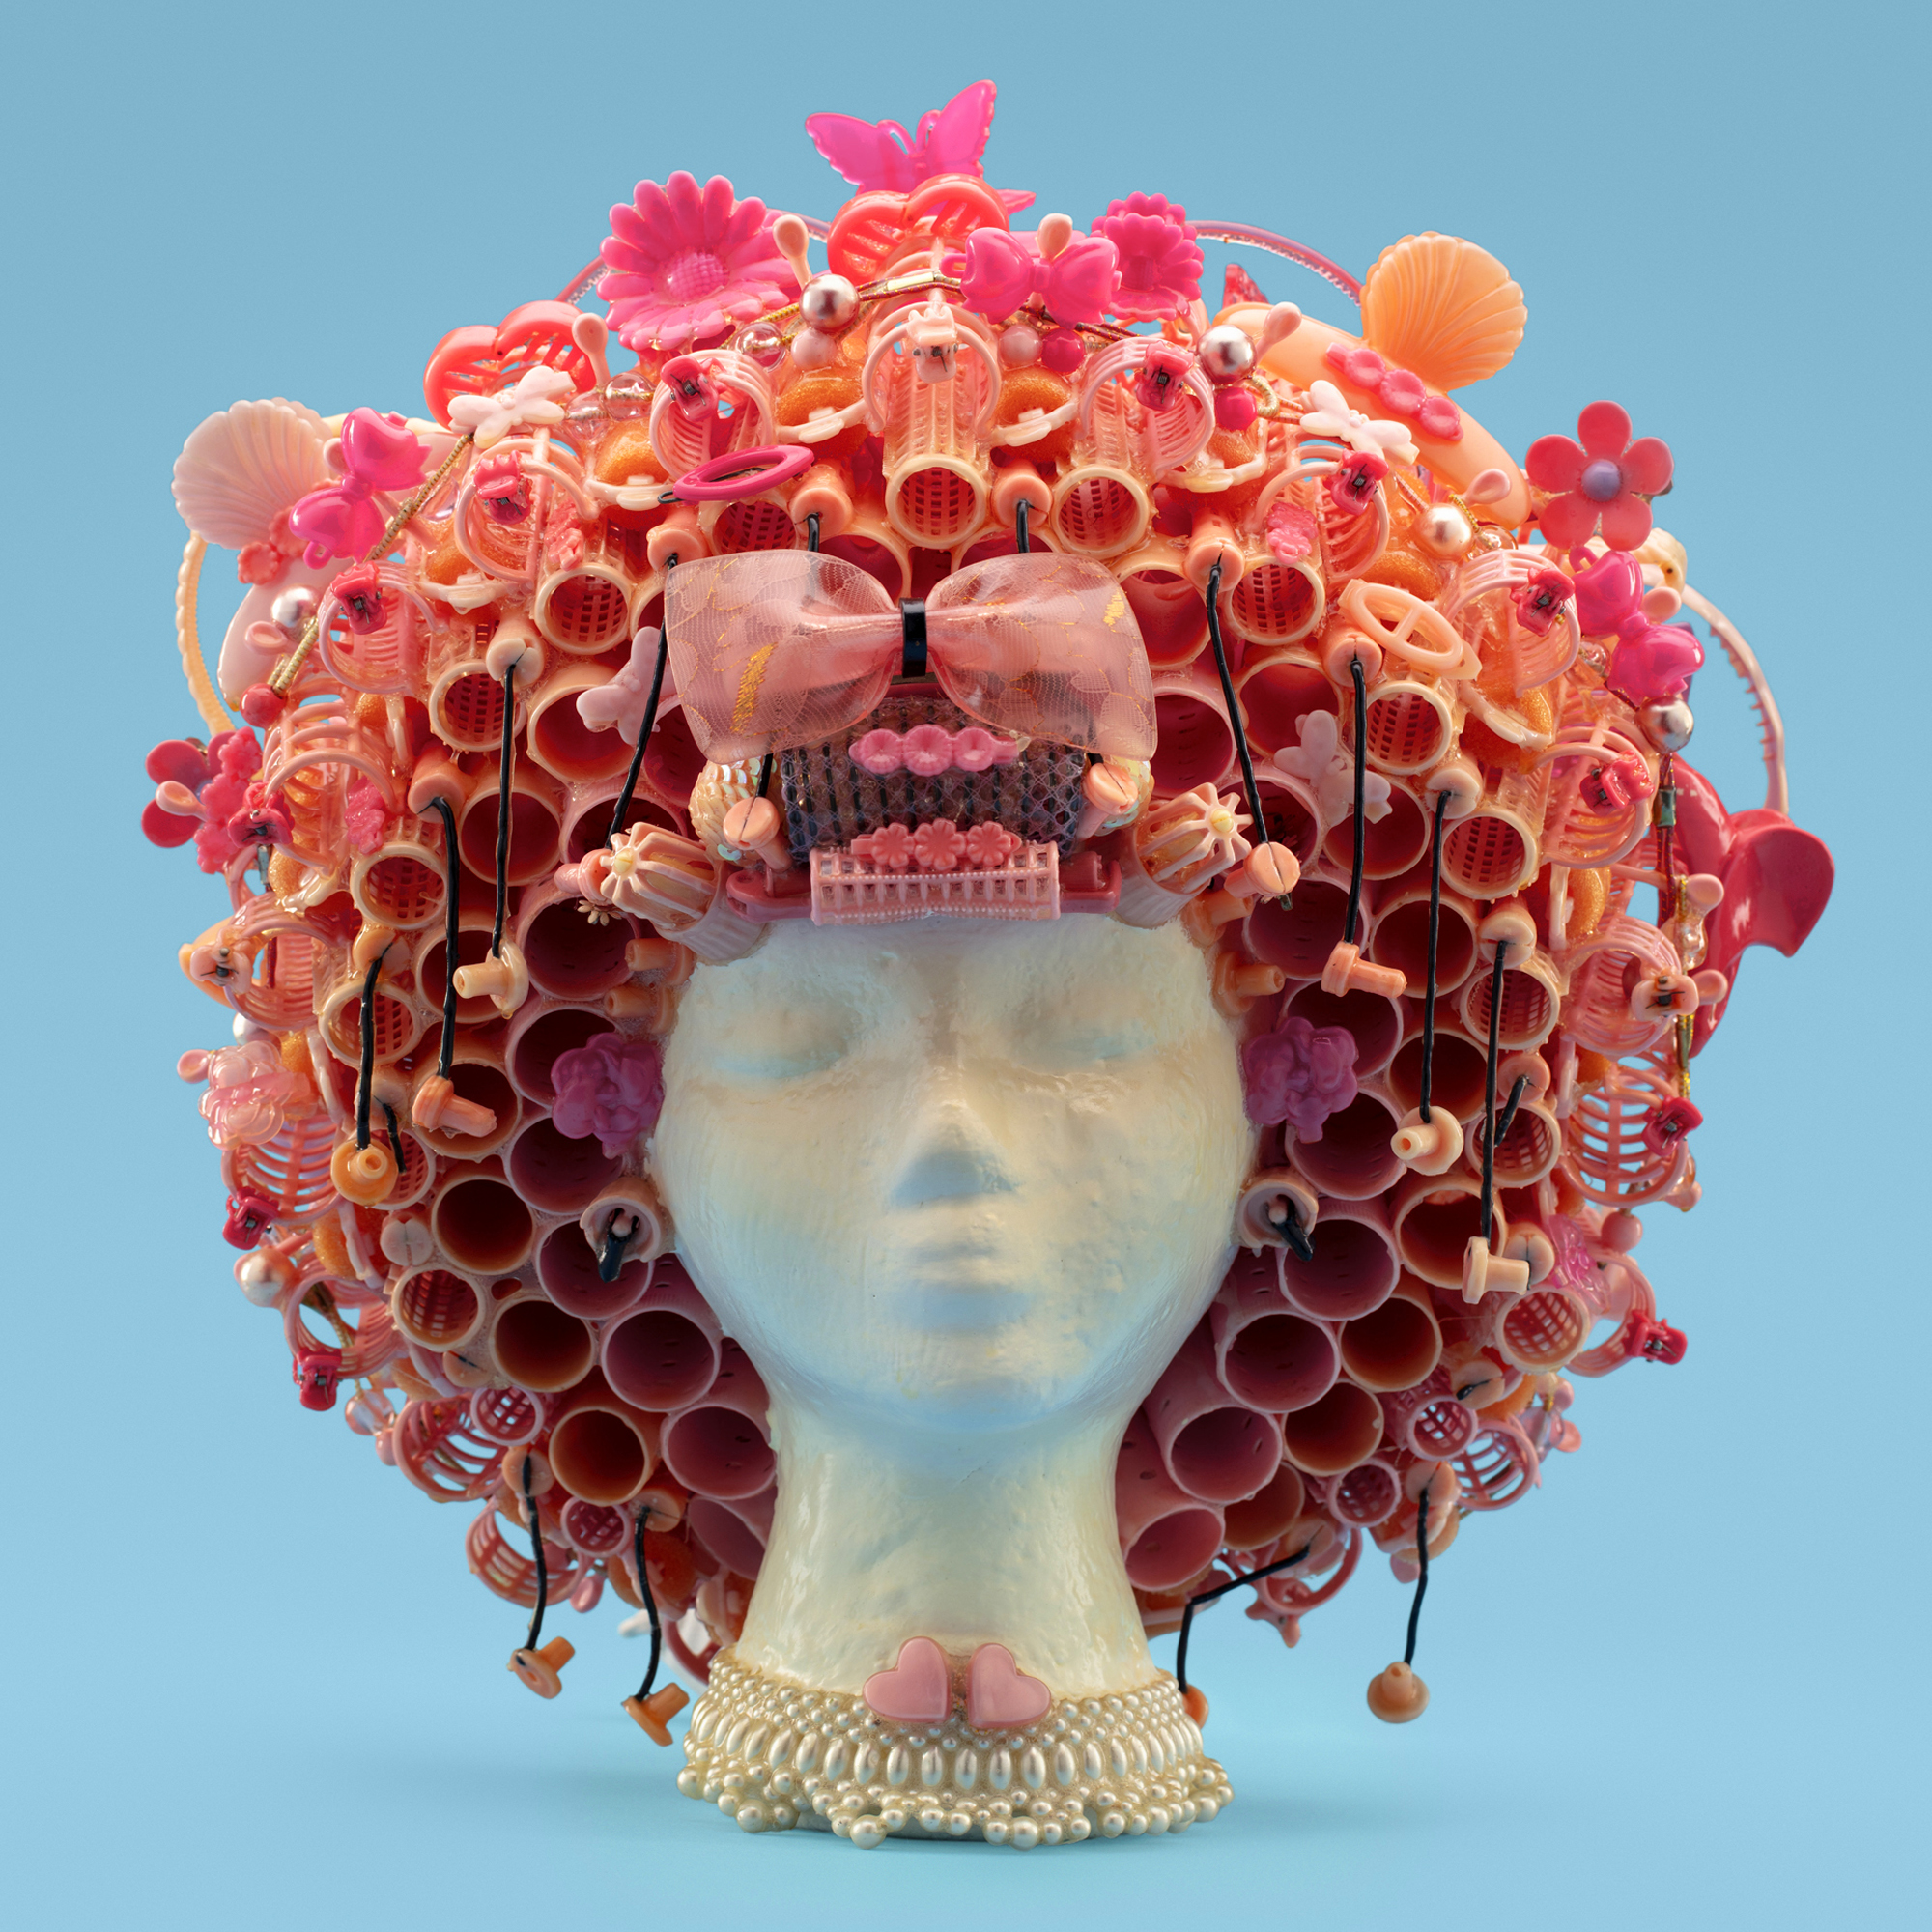 """The Afro"" Wig Sculpture; artist Jeff Hafler, Beauty Bubble Salon and Museum"